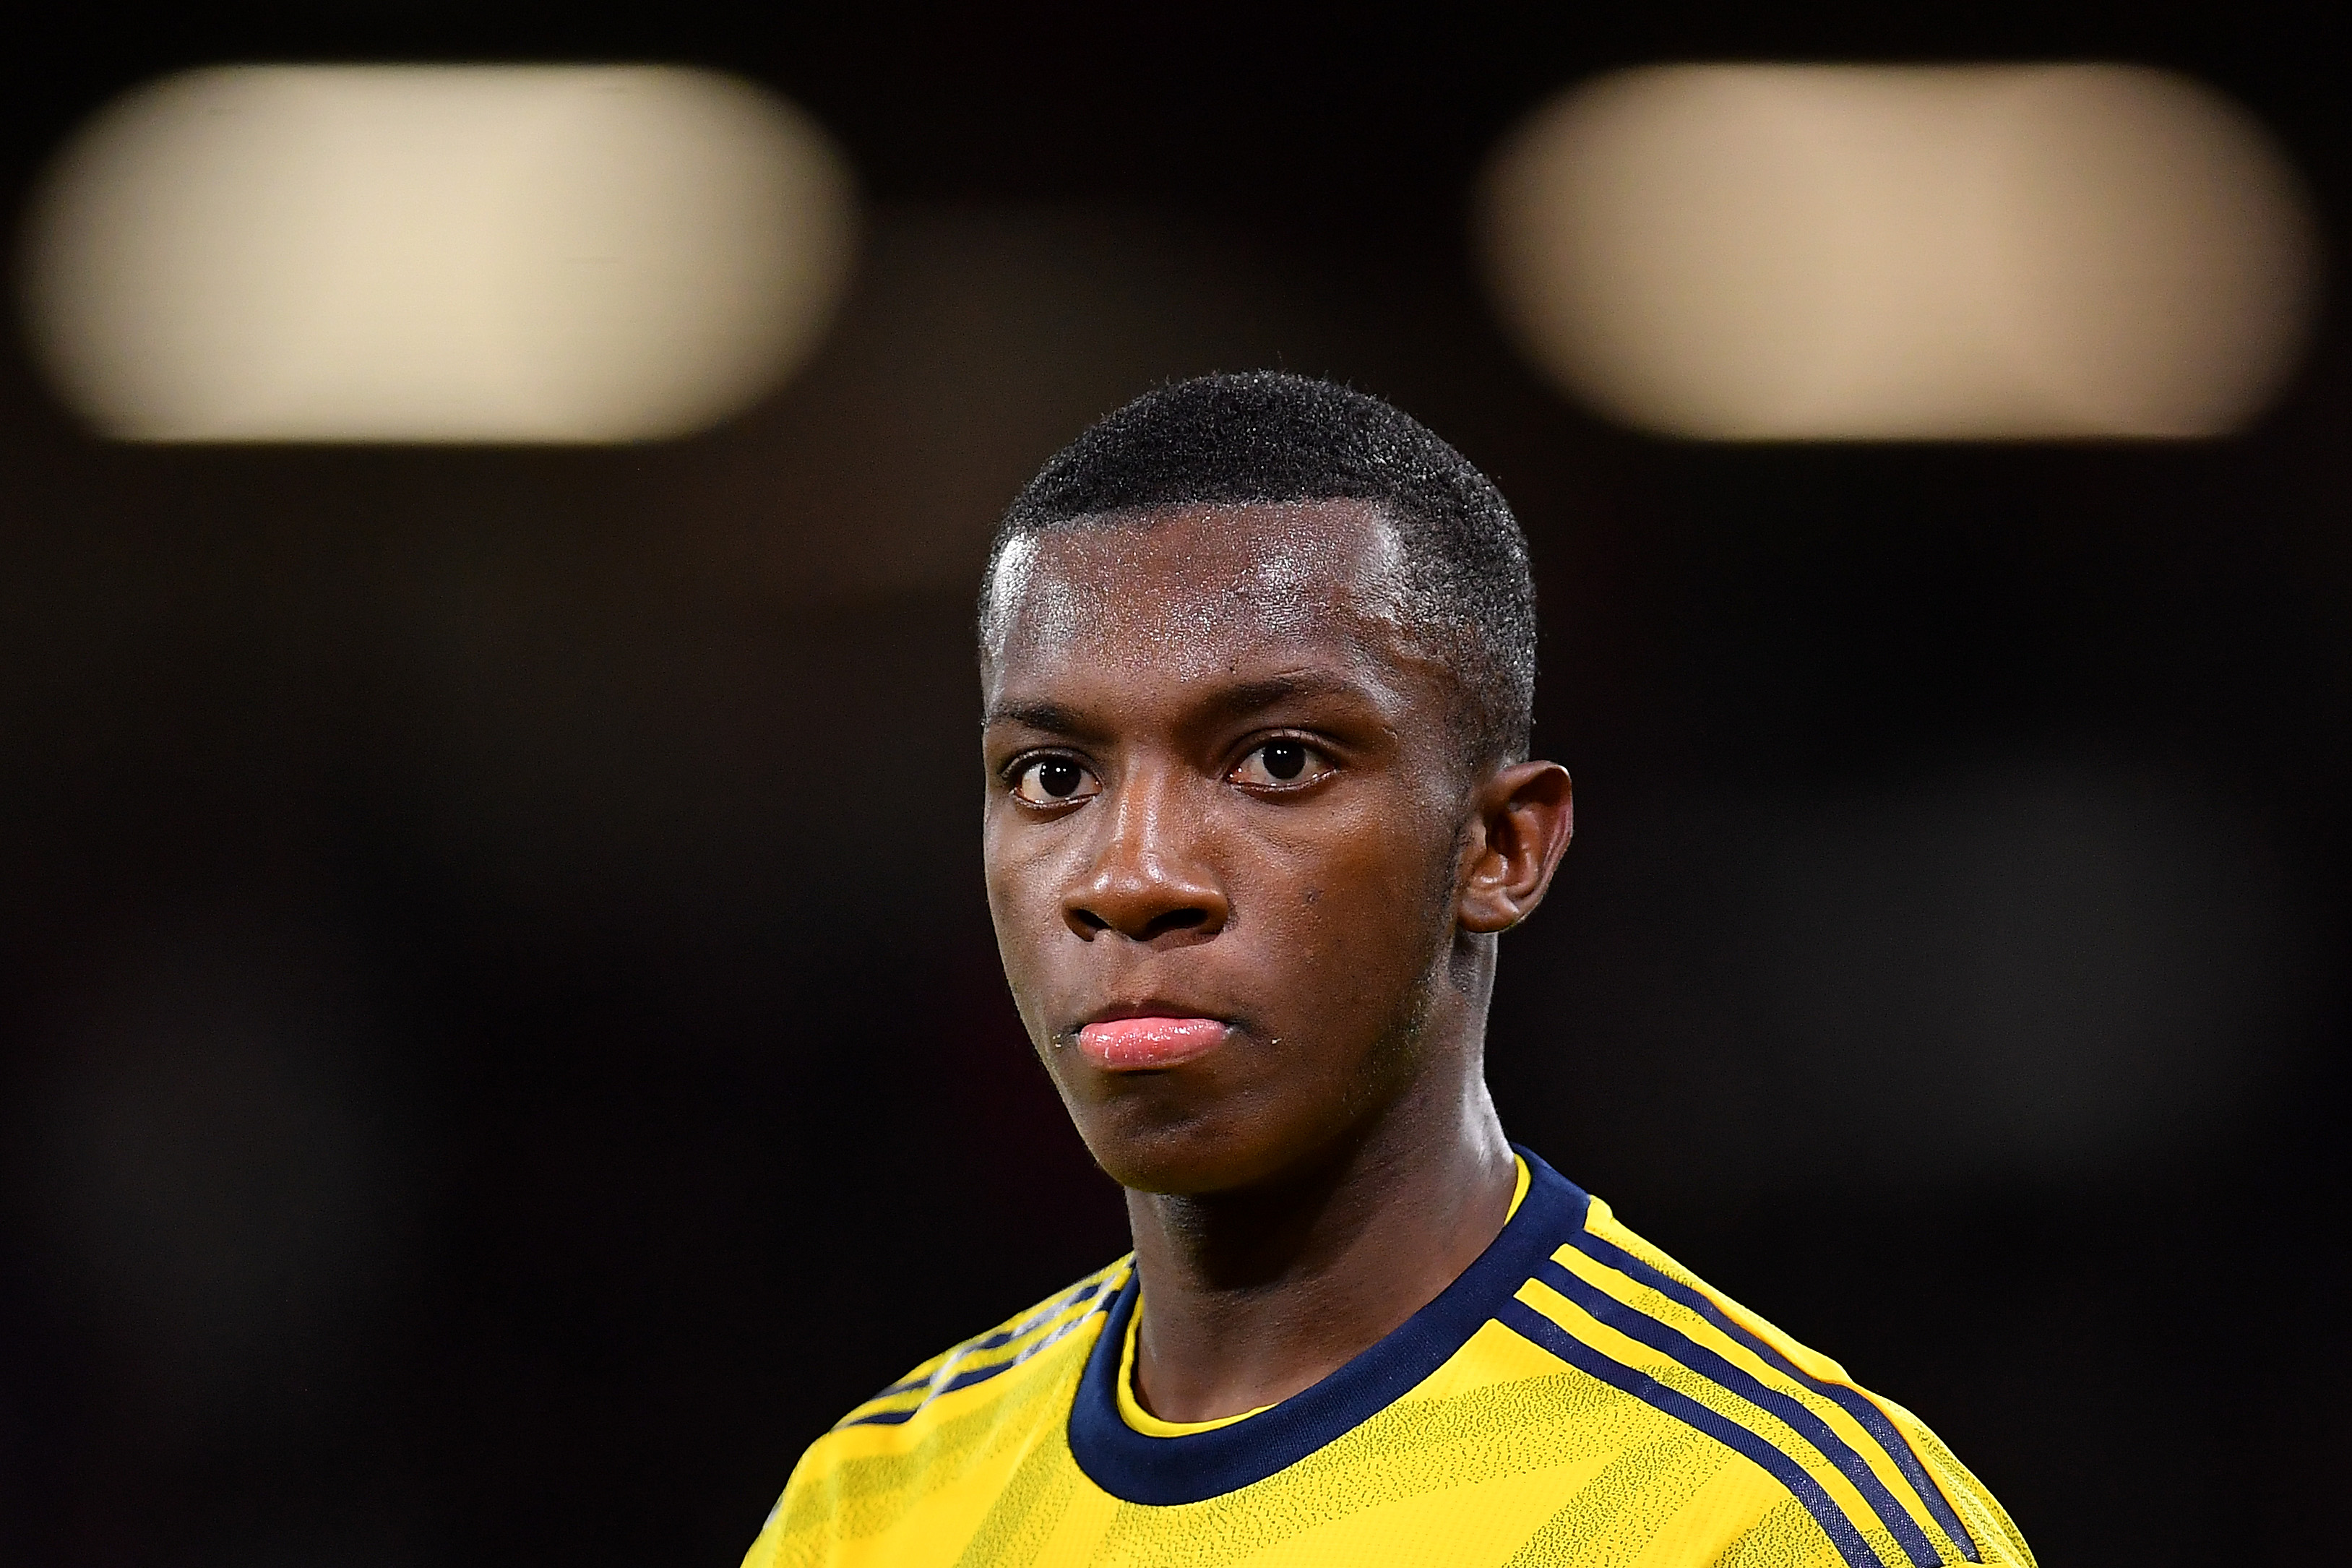 Nketiah off the mark for Arsenal this season (Photo by Justin Setterfield/Getty Images)